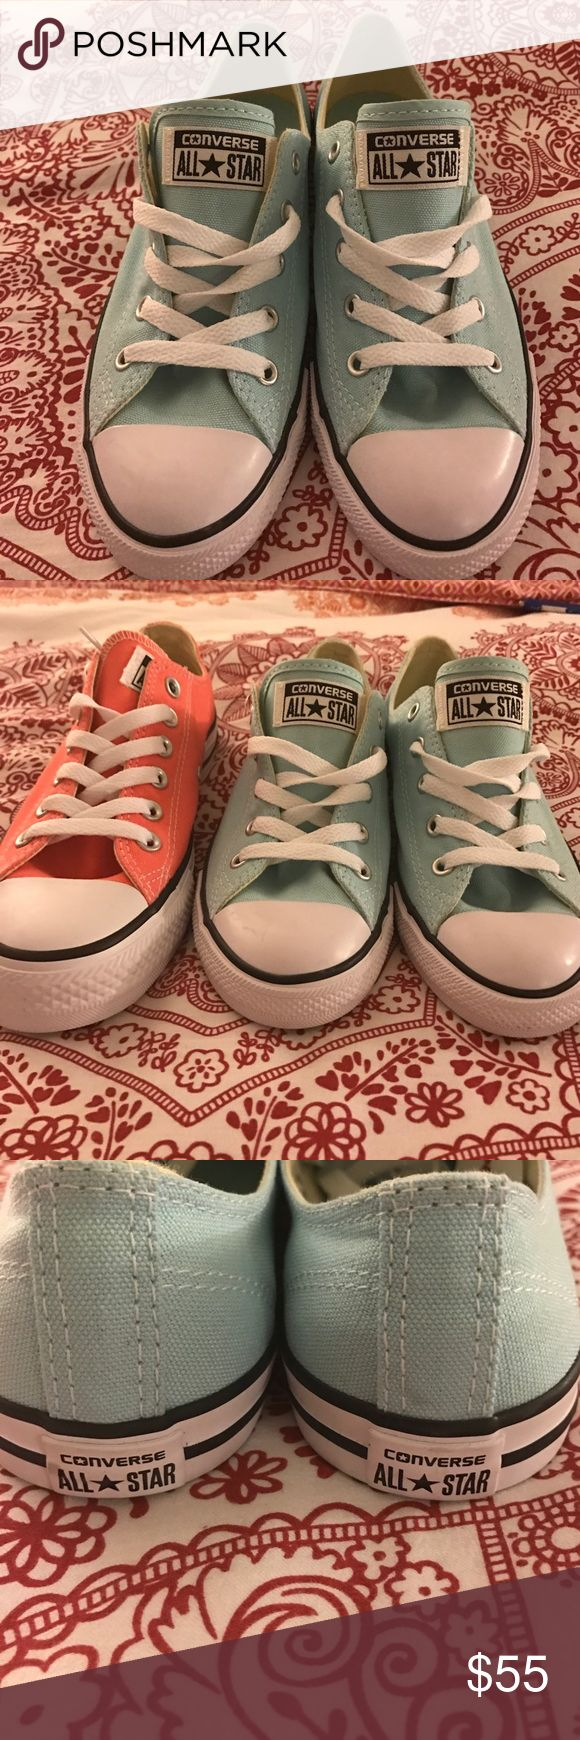 Converse All ⭐️ Star 😍 Chic light turquoise Converse All ⭐️ star . Thin sole , super cute and a must have for spring and summer 😃😍😎. Size 7 woman, New with no box. Converse Shoes Sneakers